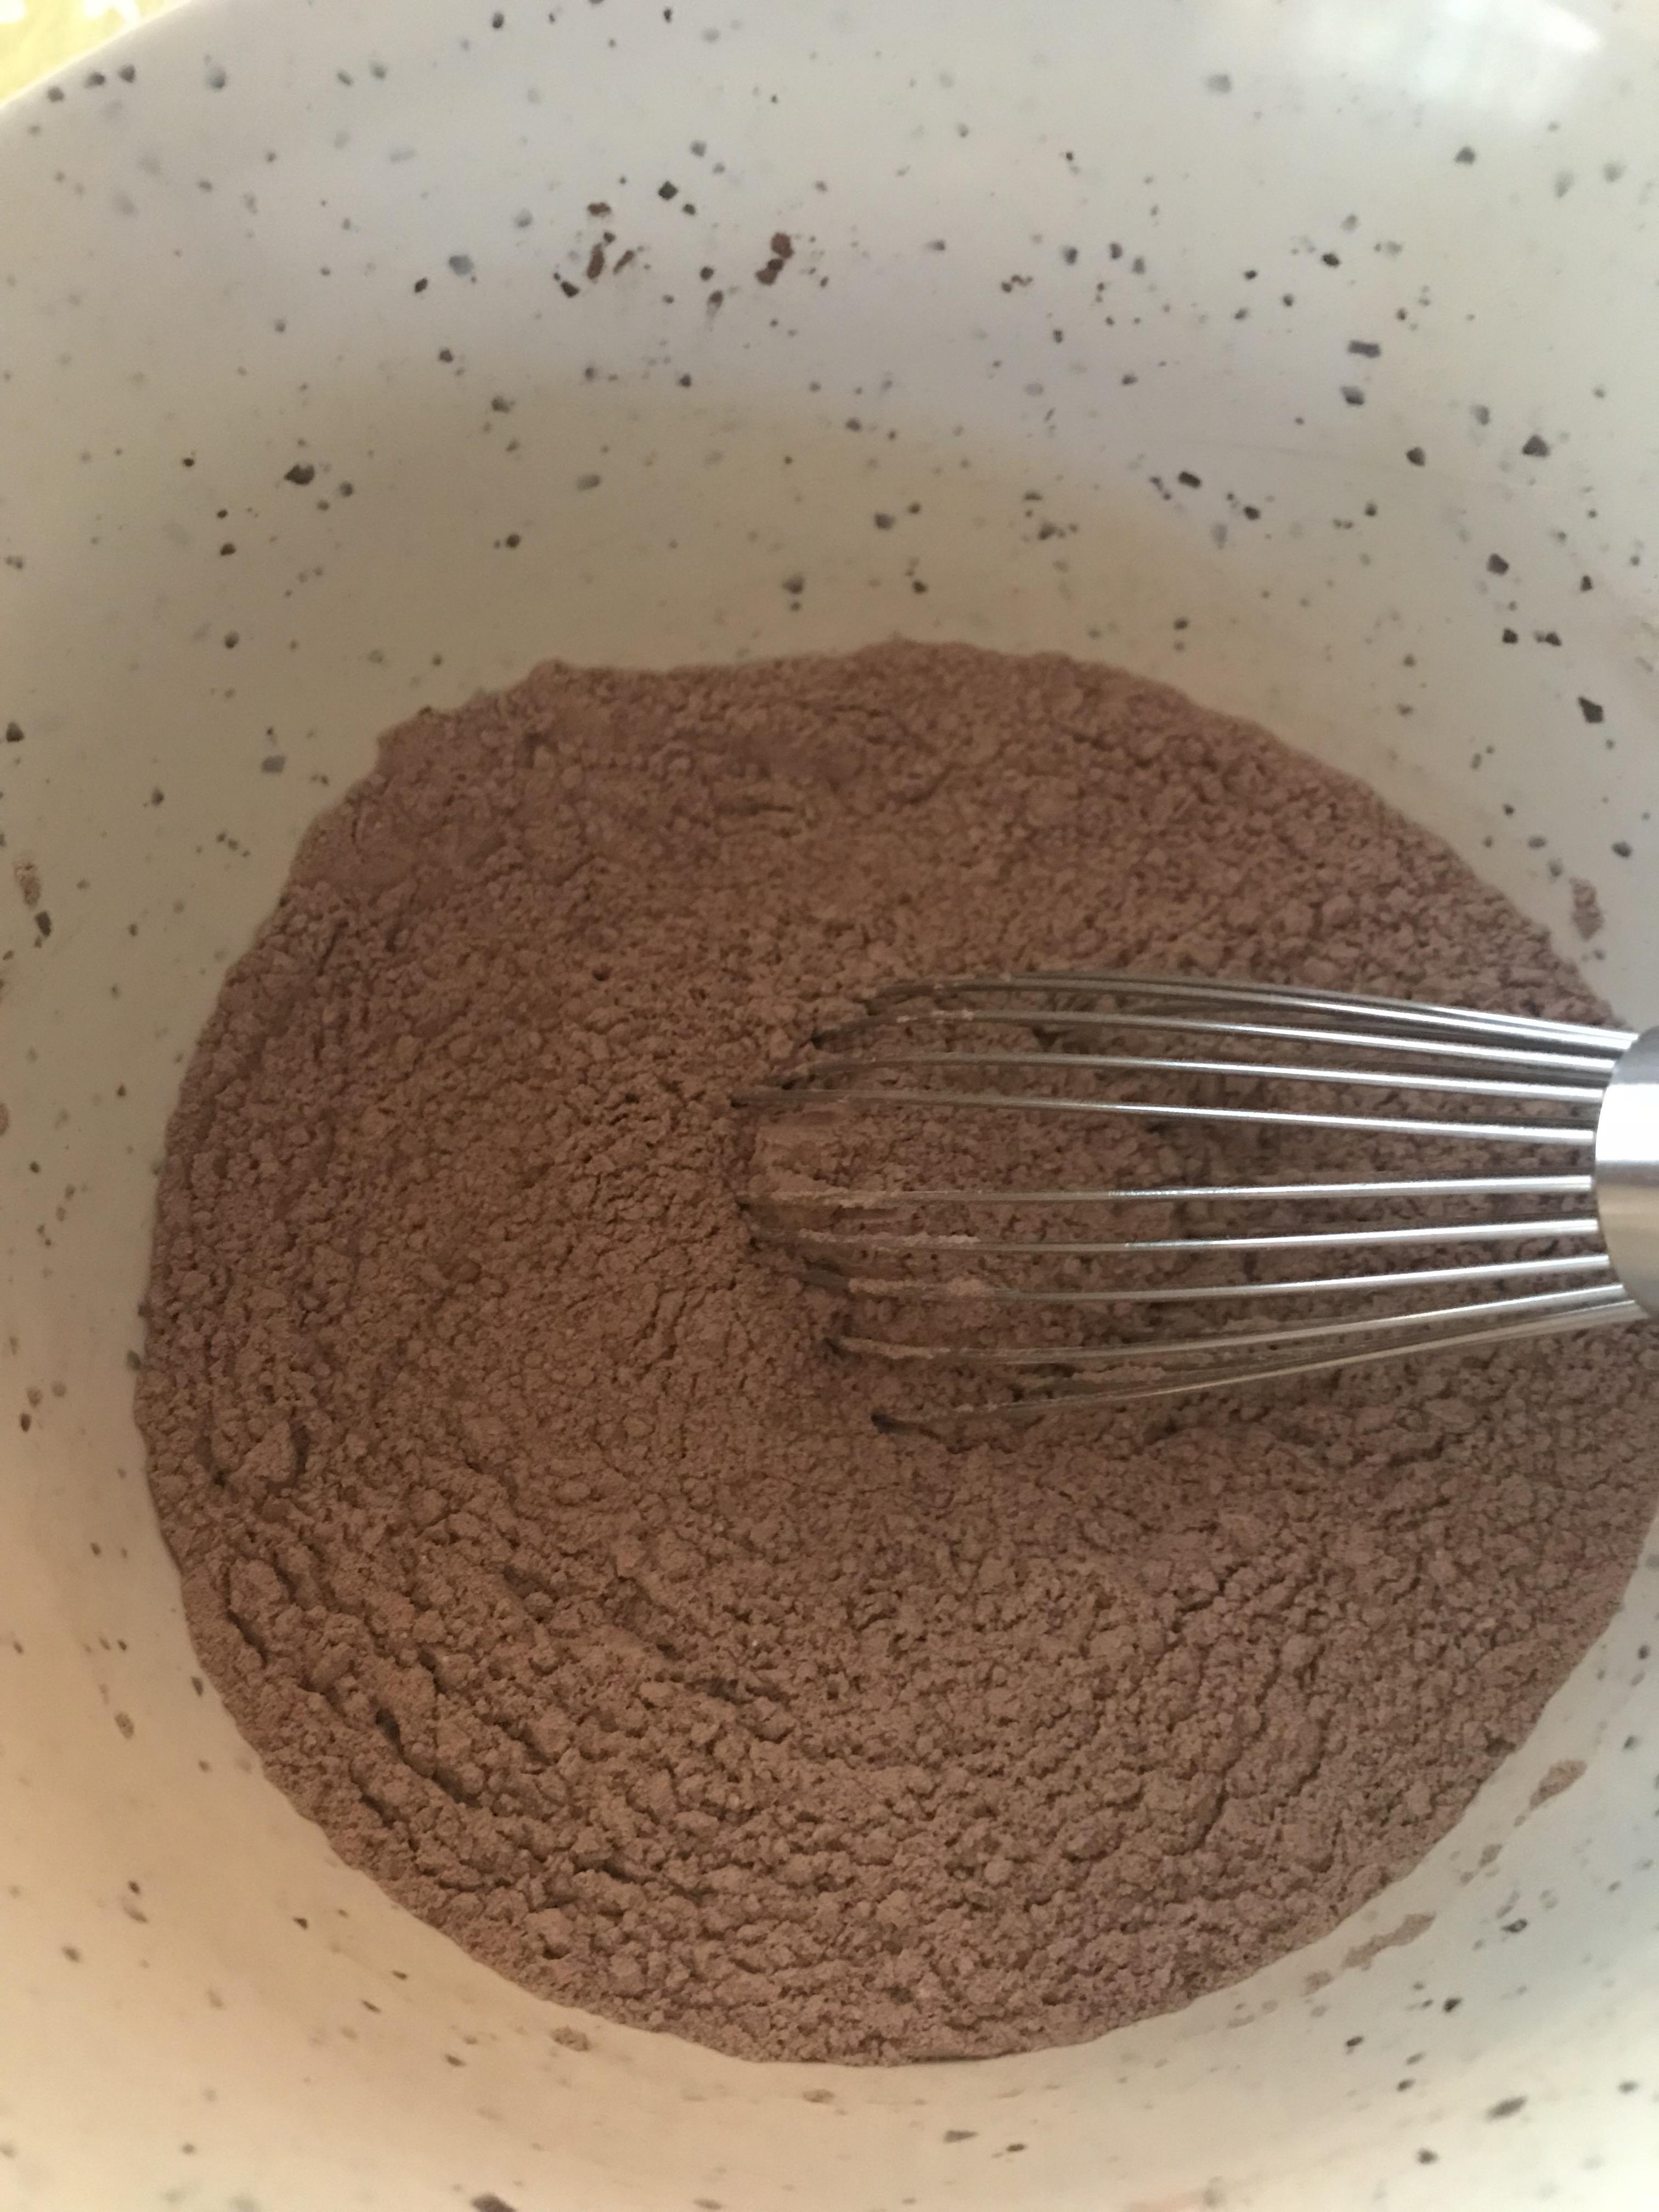 Whisk dry ingredients for Chocolate Espresso Crackle Cookies